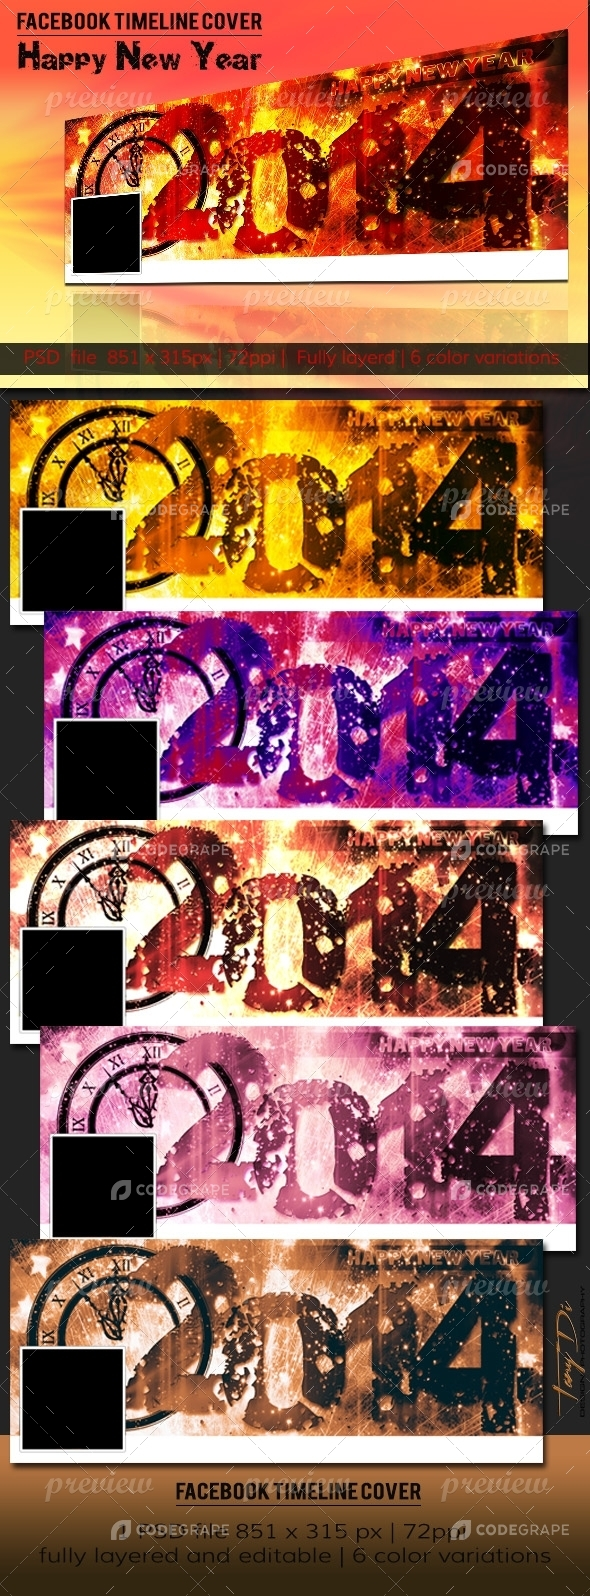 Vintage New Year | FB Timeline Cover